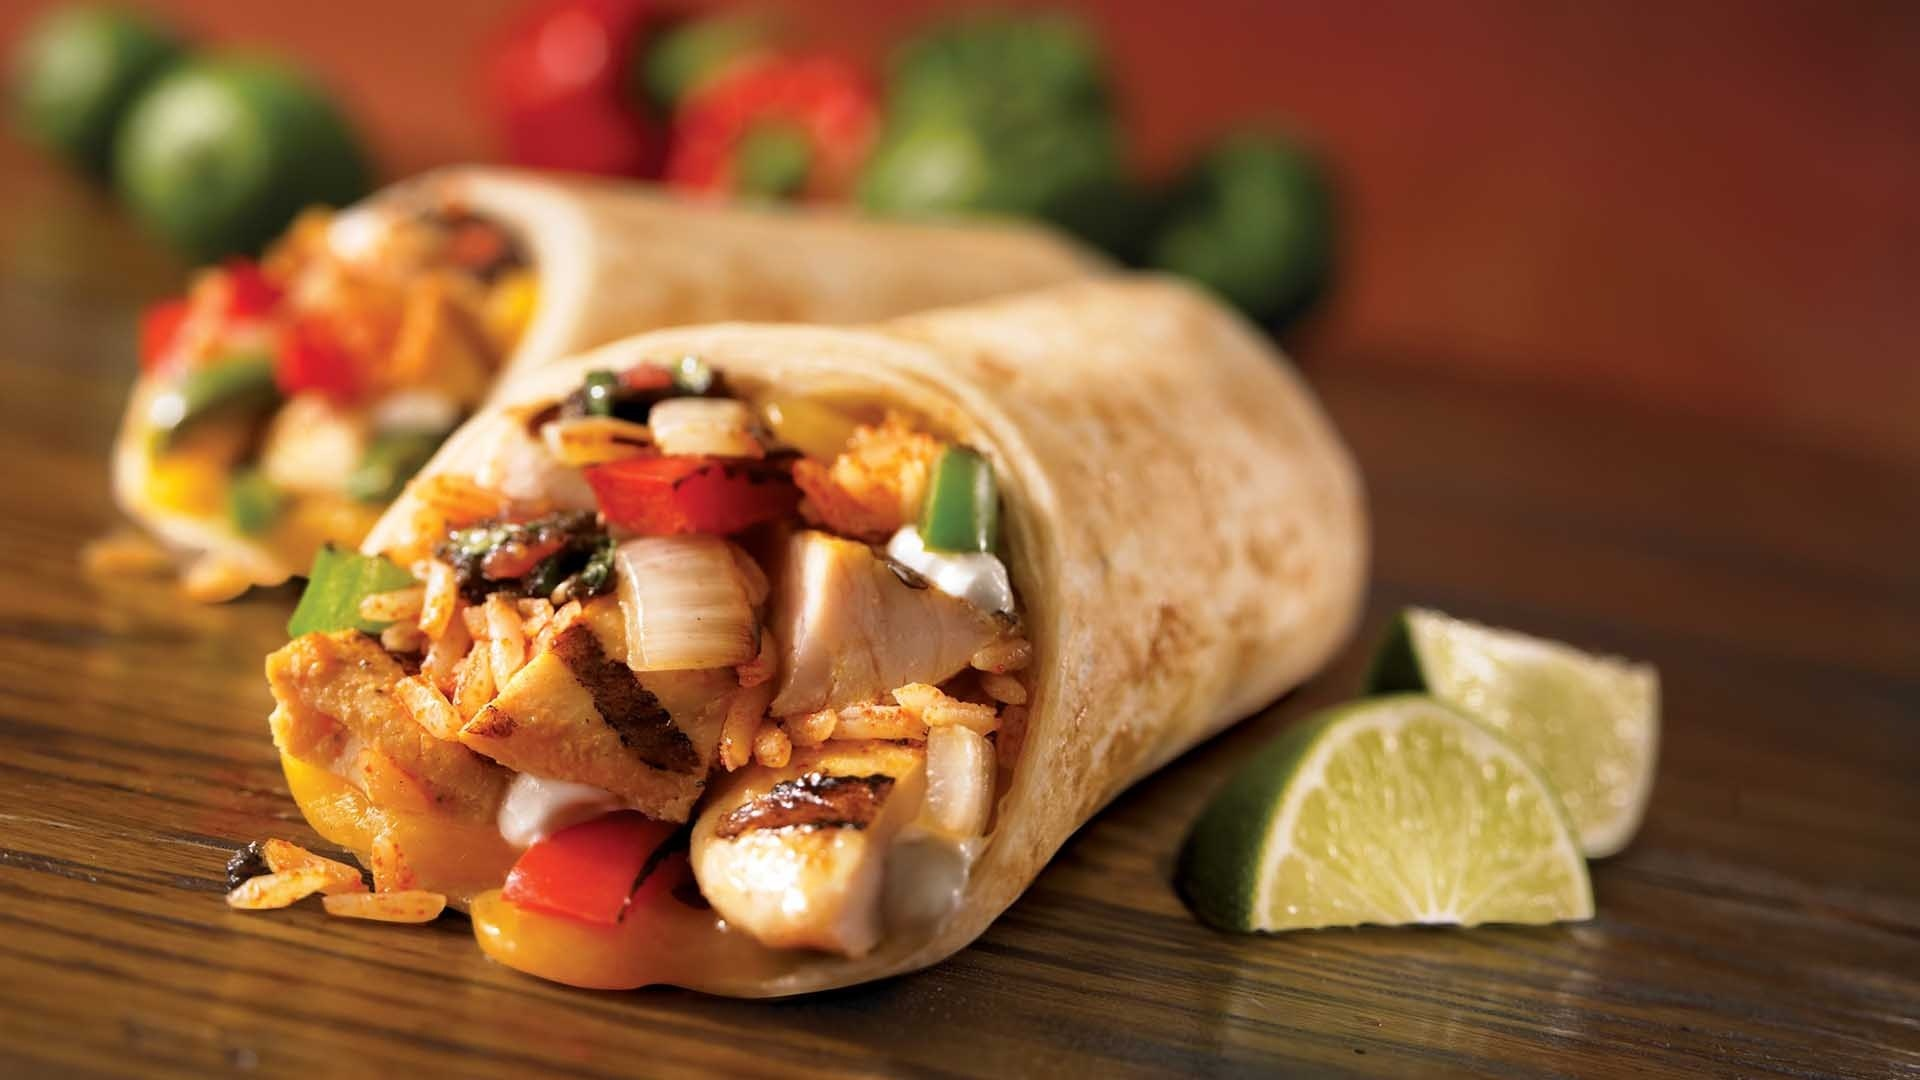 burrito-chicken-delicious-461198.jpg